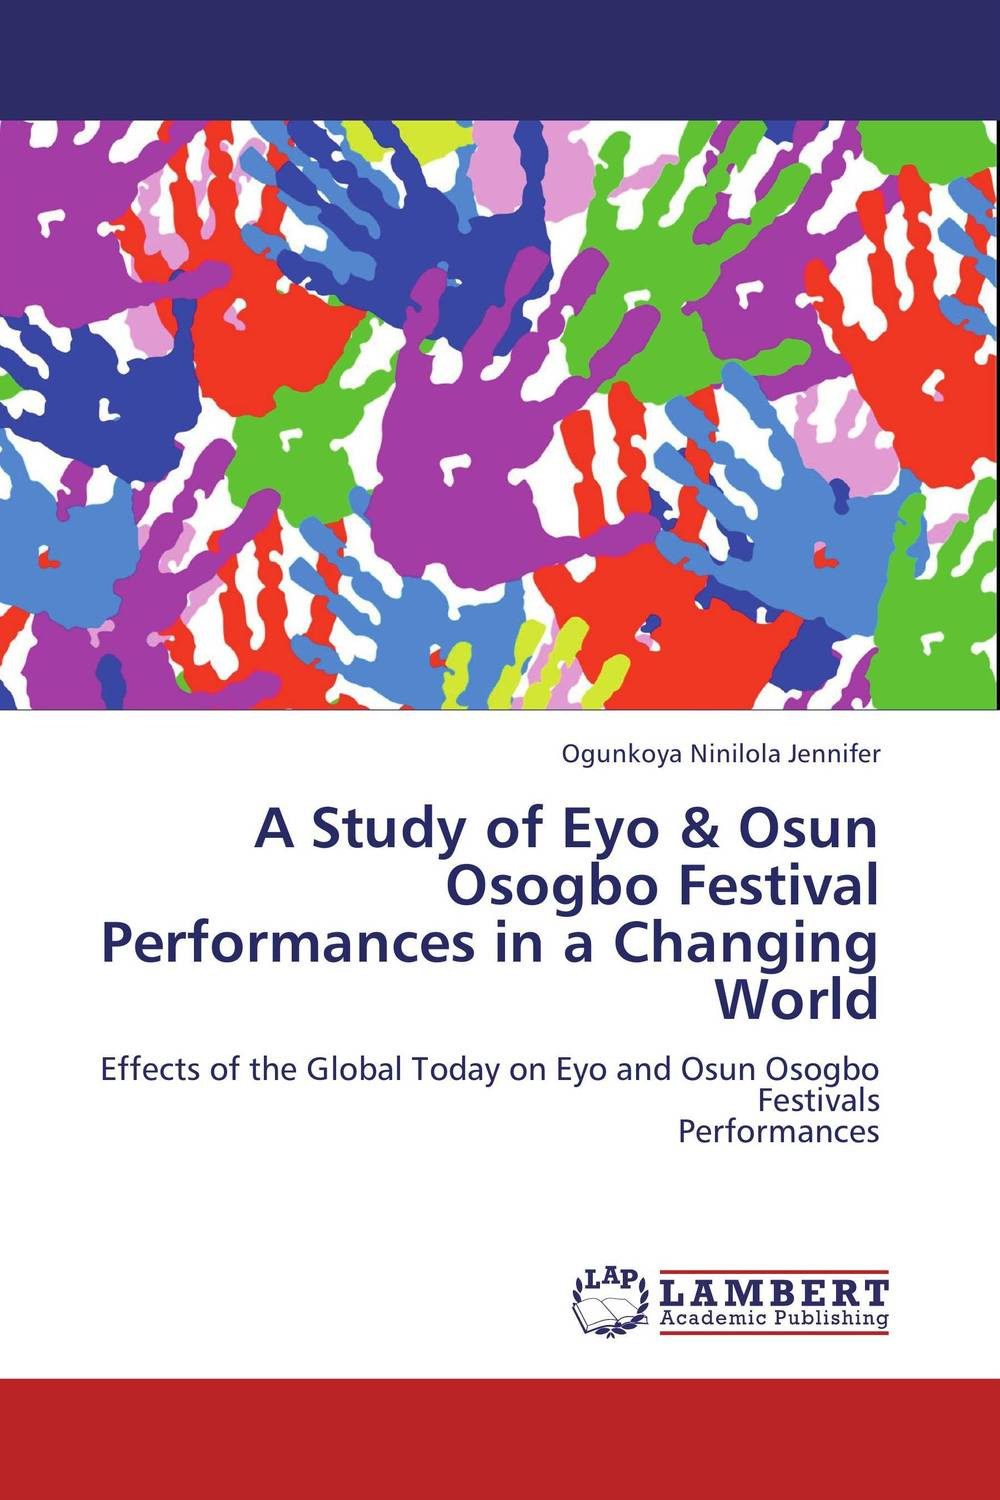 A Study of Eyo & Osun Osogbo Festival Performances in a Changing World a study of the religio political thought of abdurrahman wahid